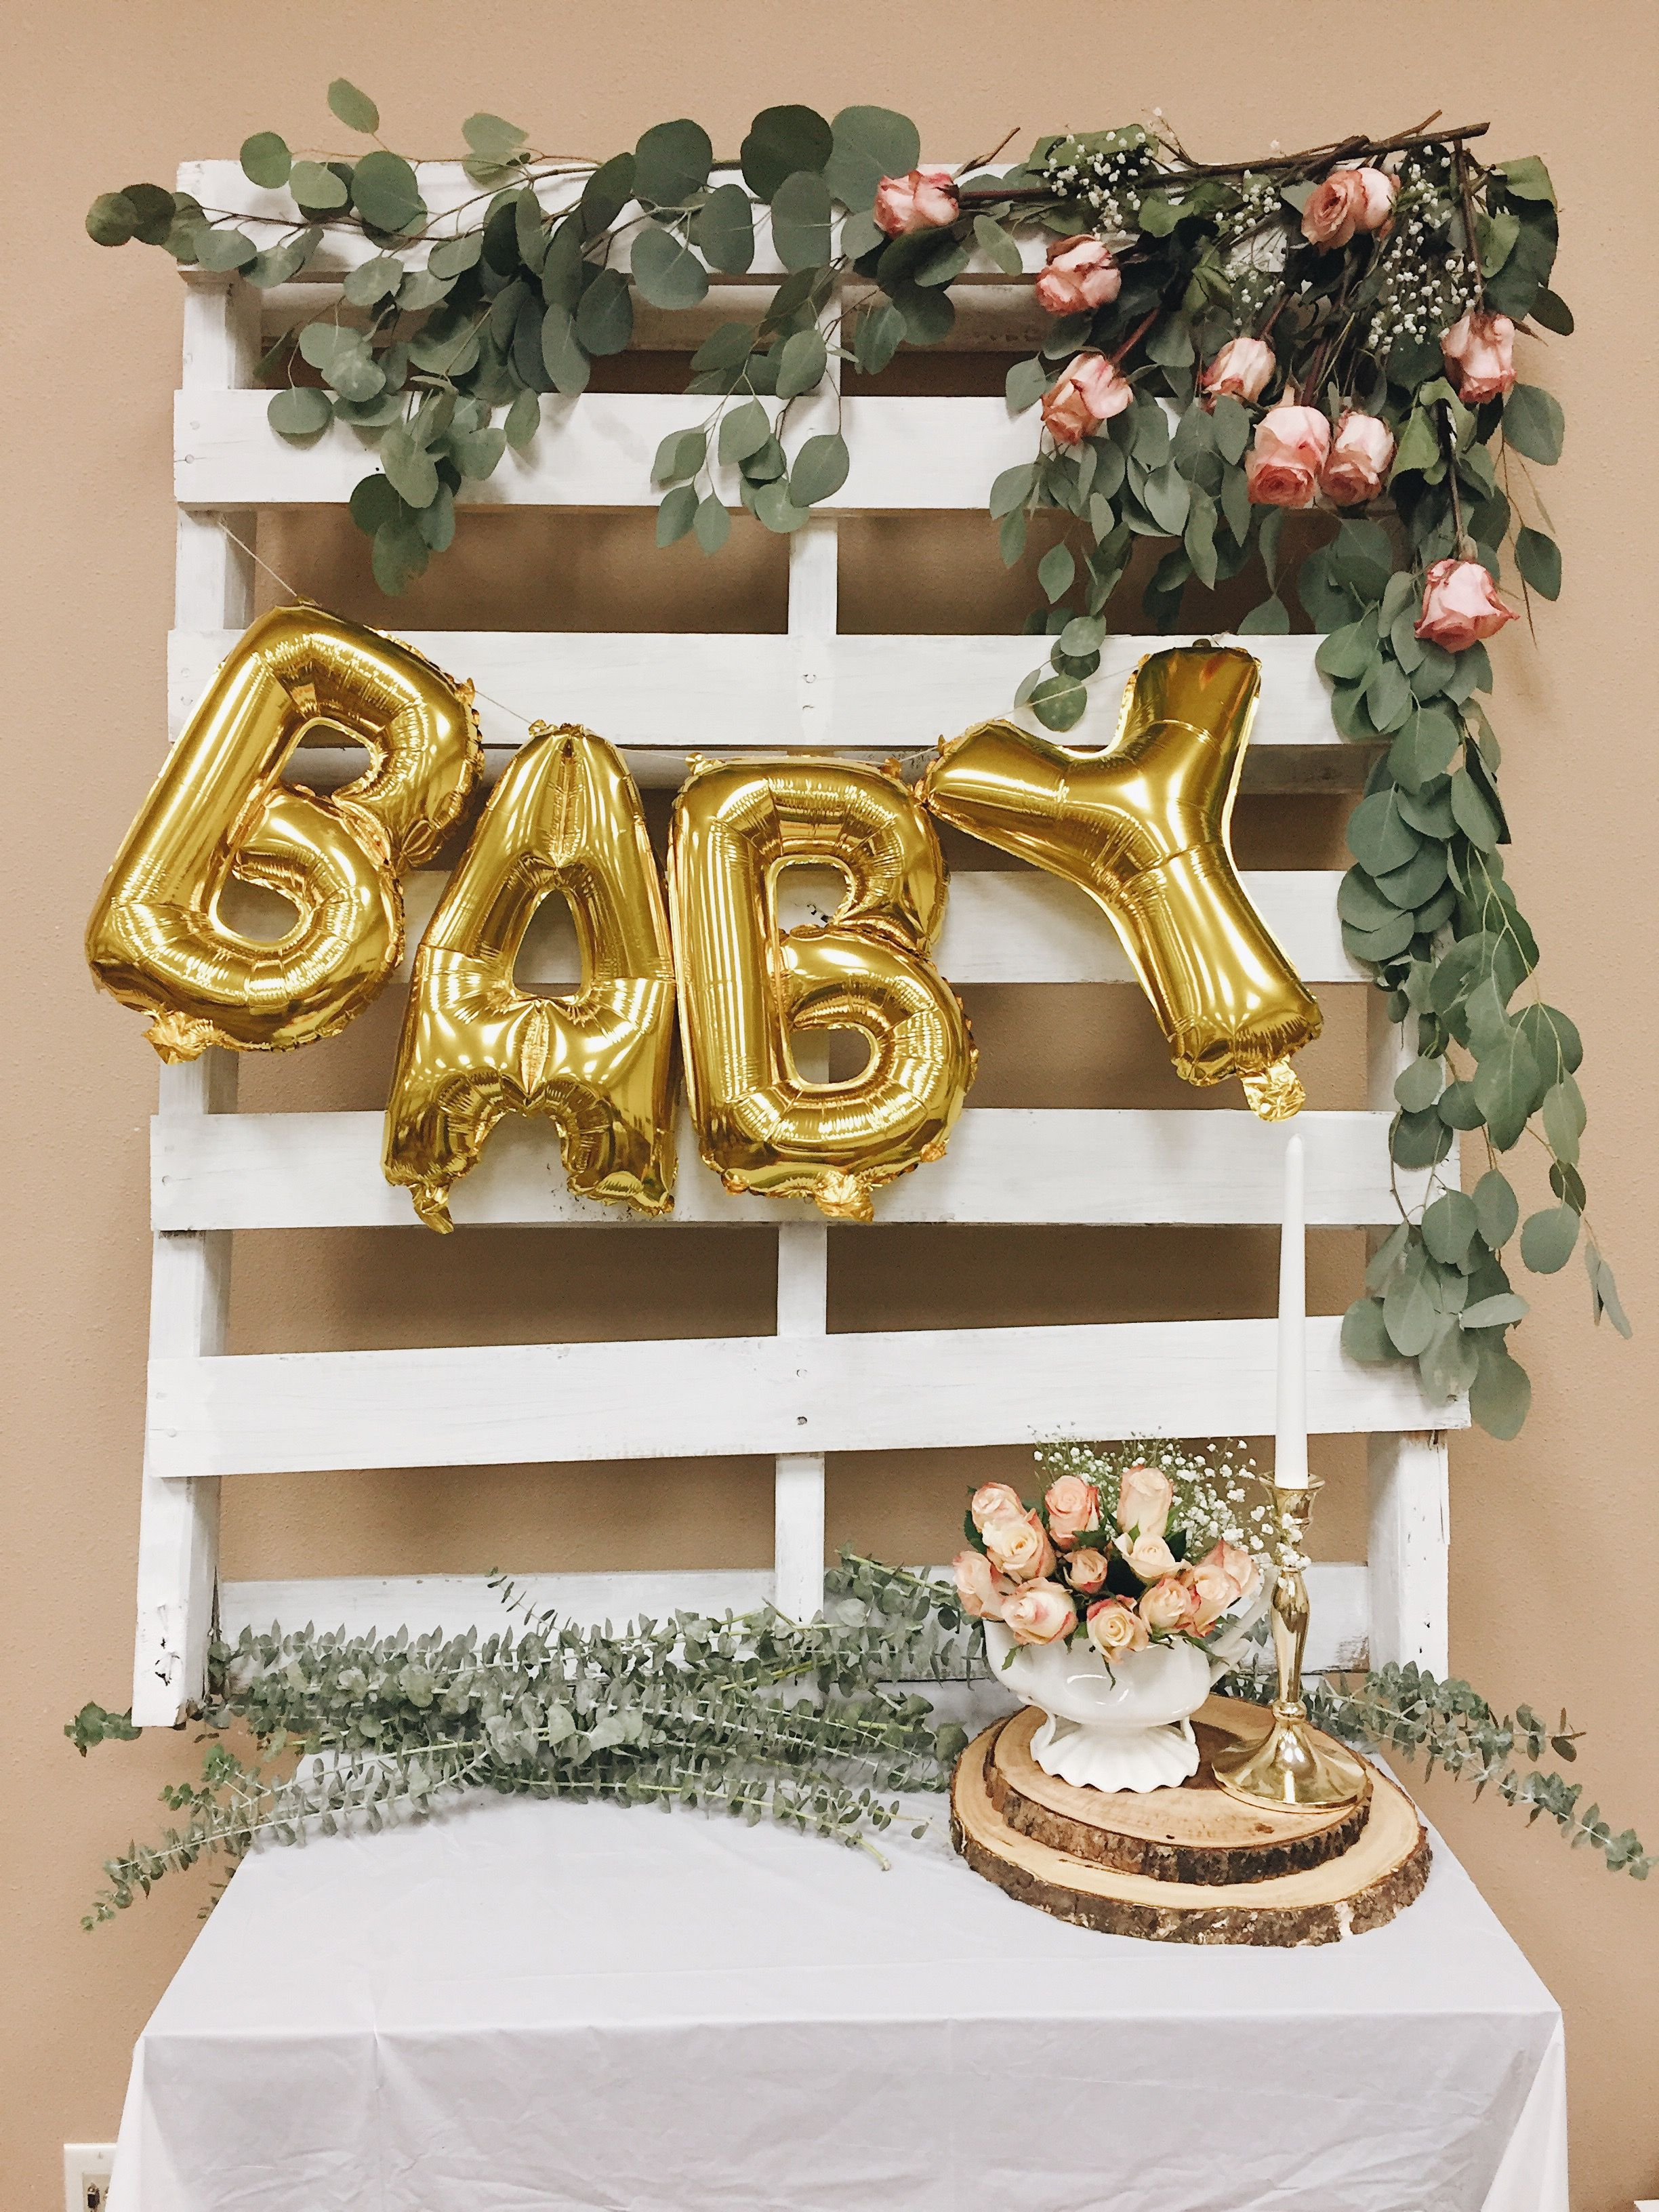 Diy Rustic Chic Vintage Baby Shower Theme Pallet Wood Baby Girl Gold Blush Pink Greenery Baby Shower Vintage Vintage Baby Shower Theme Girl Shower Themes